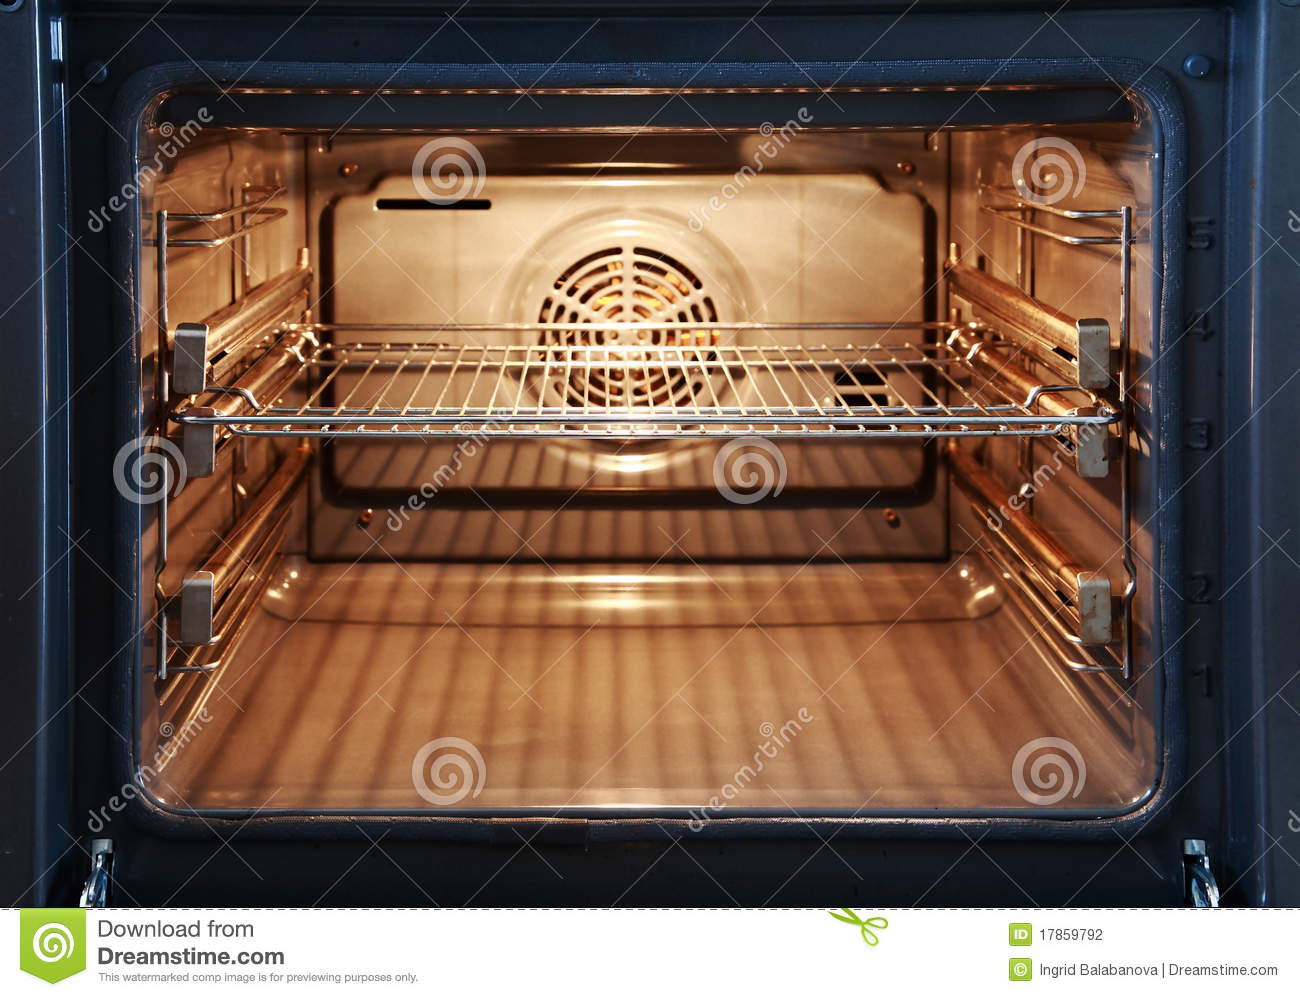 Open Oven Stock Photography - Image: 17859792